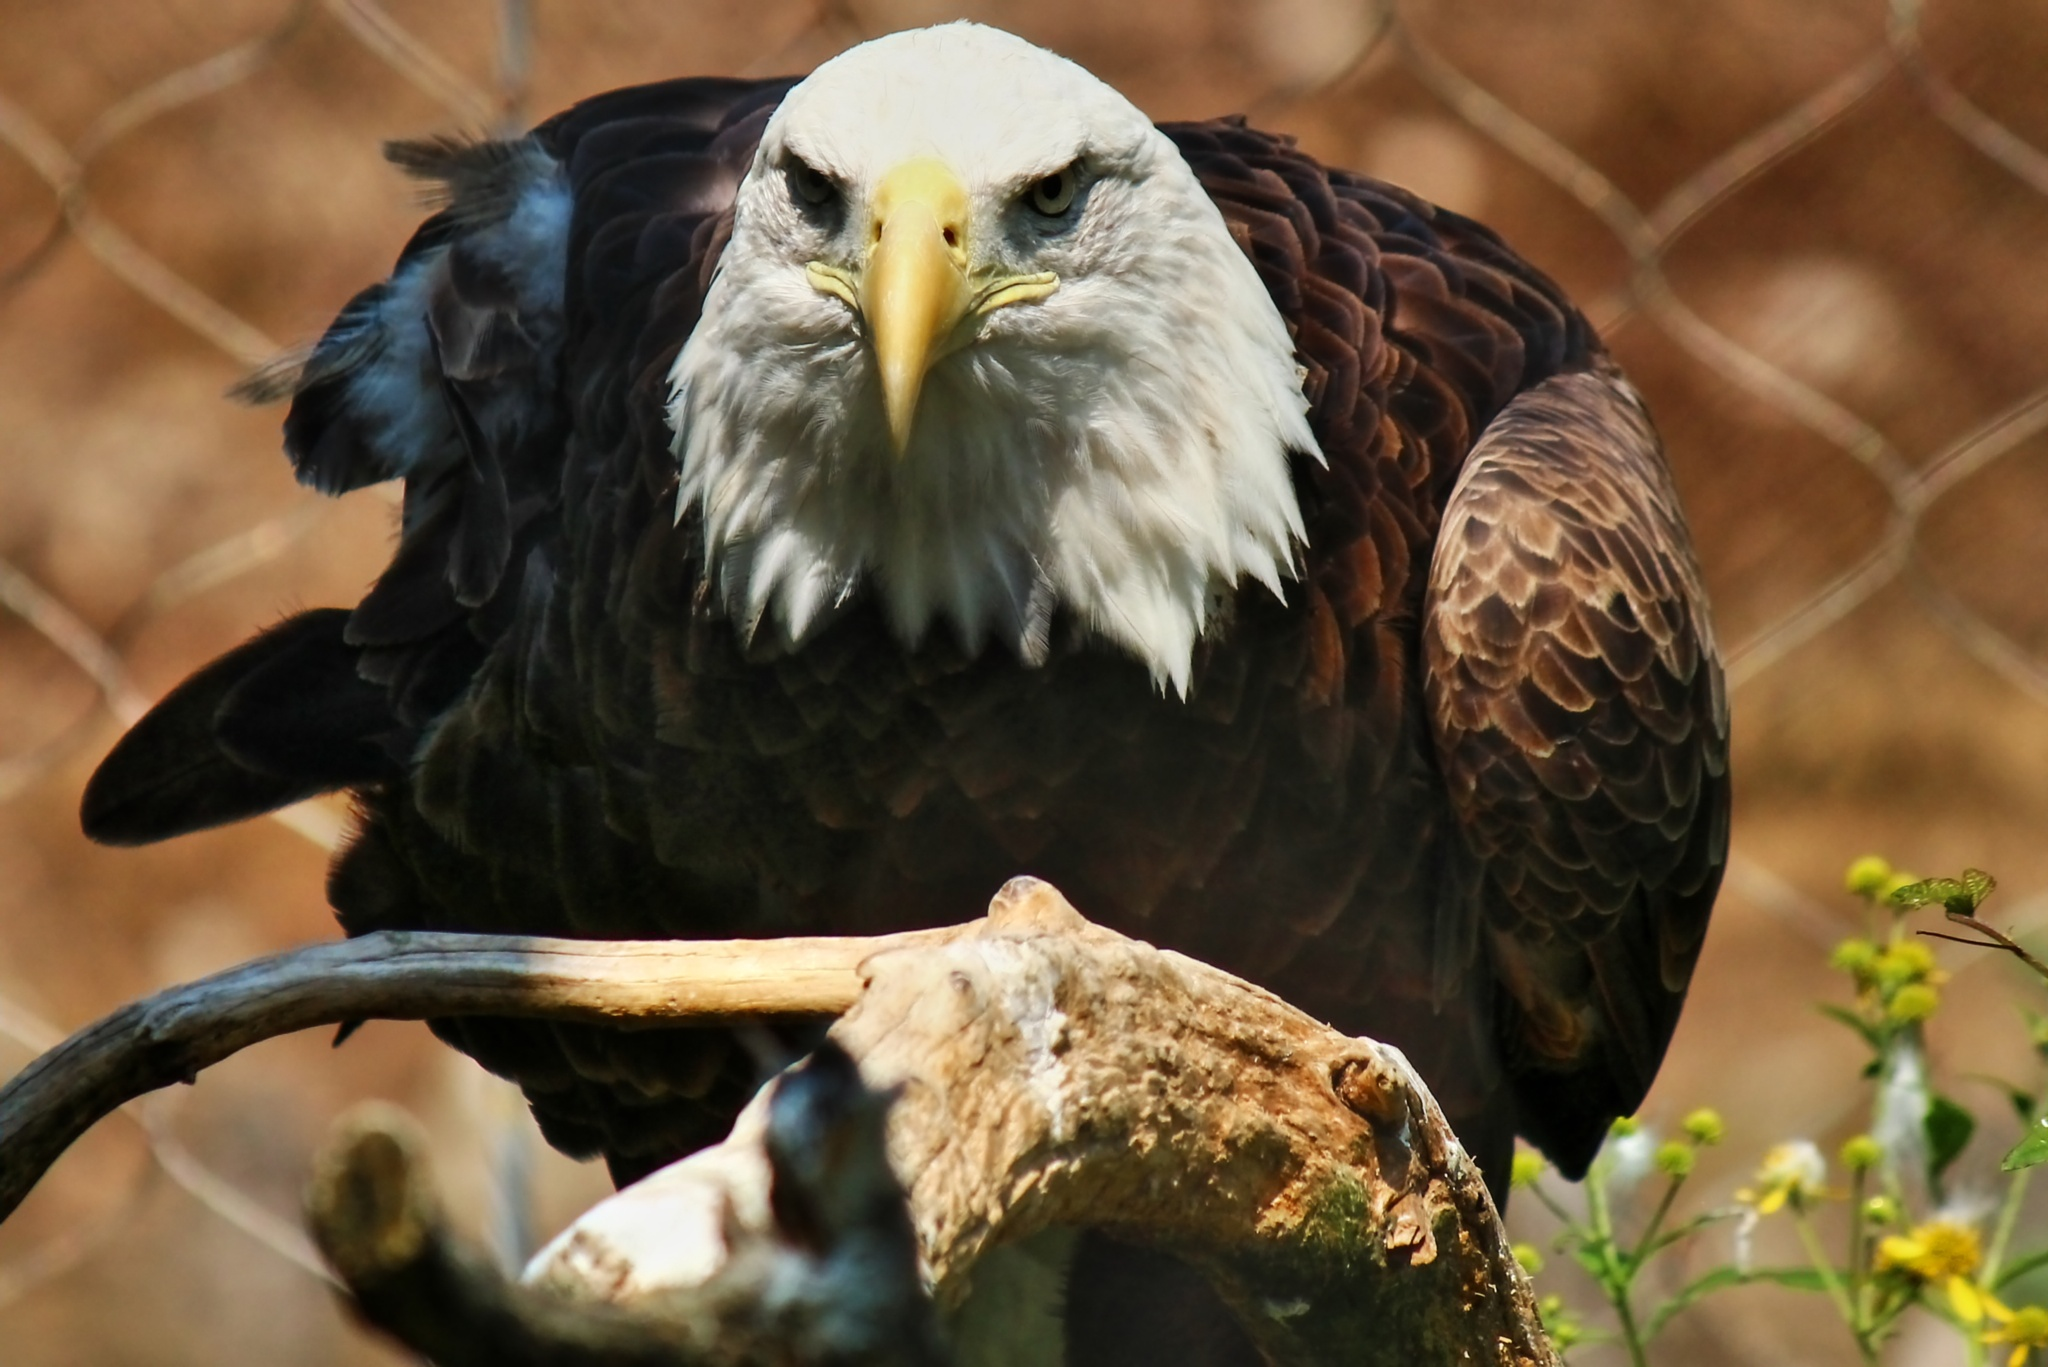 Eagle at Zoo America by Clark L. Roberts